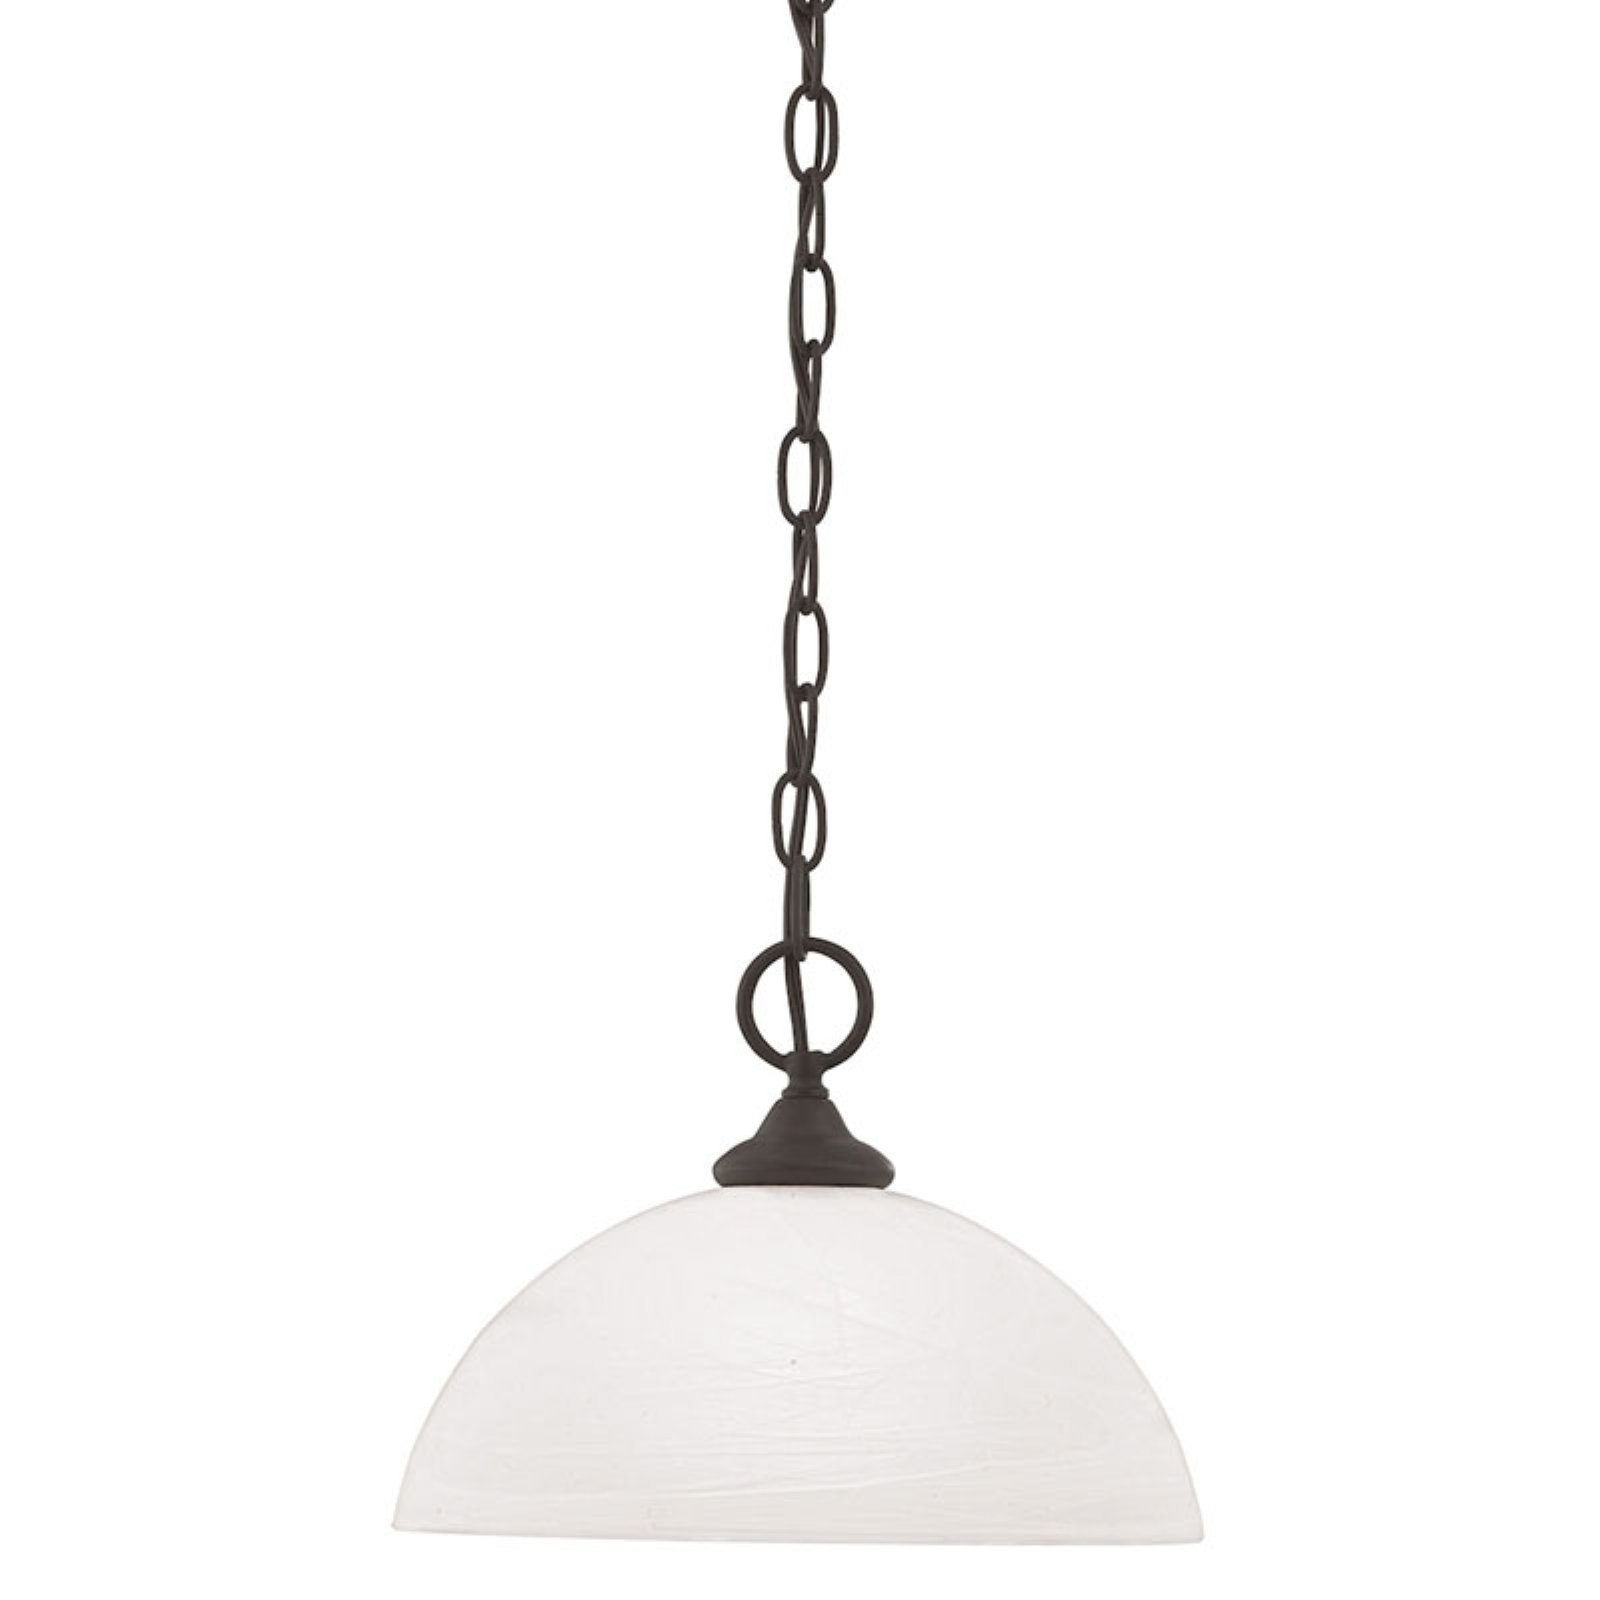 Thomas Lighting Tahoe SL823463 Pendant Light by ELK